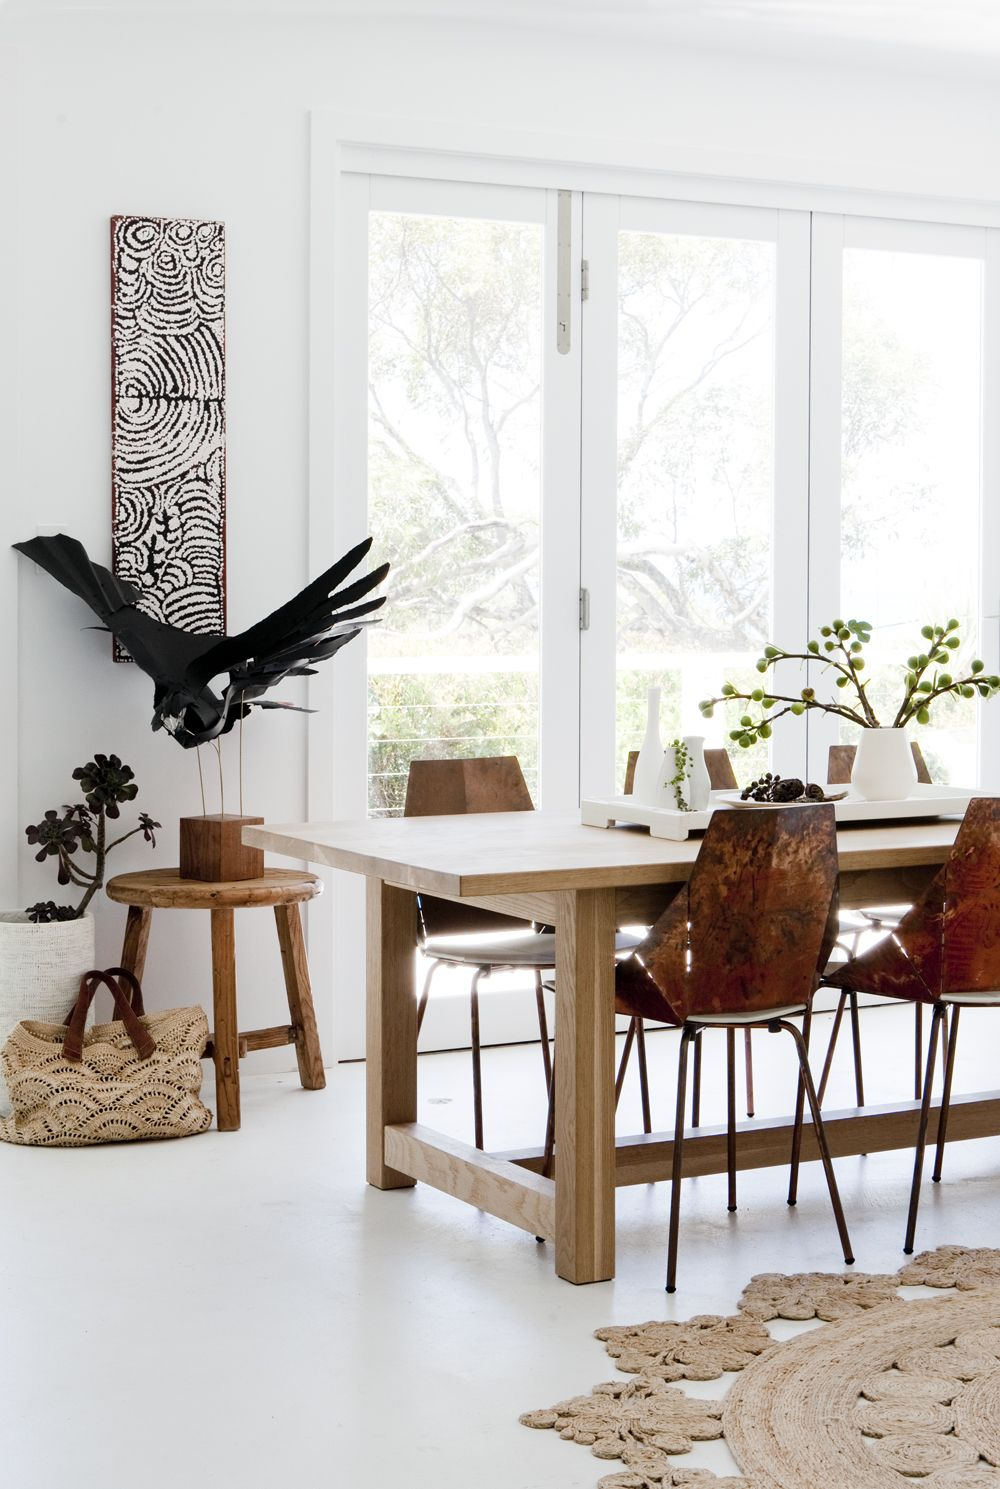 Charmant Your Fresh Dose Of Inspiration For New Dining Room Décors